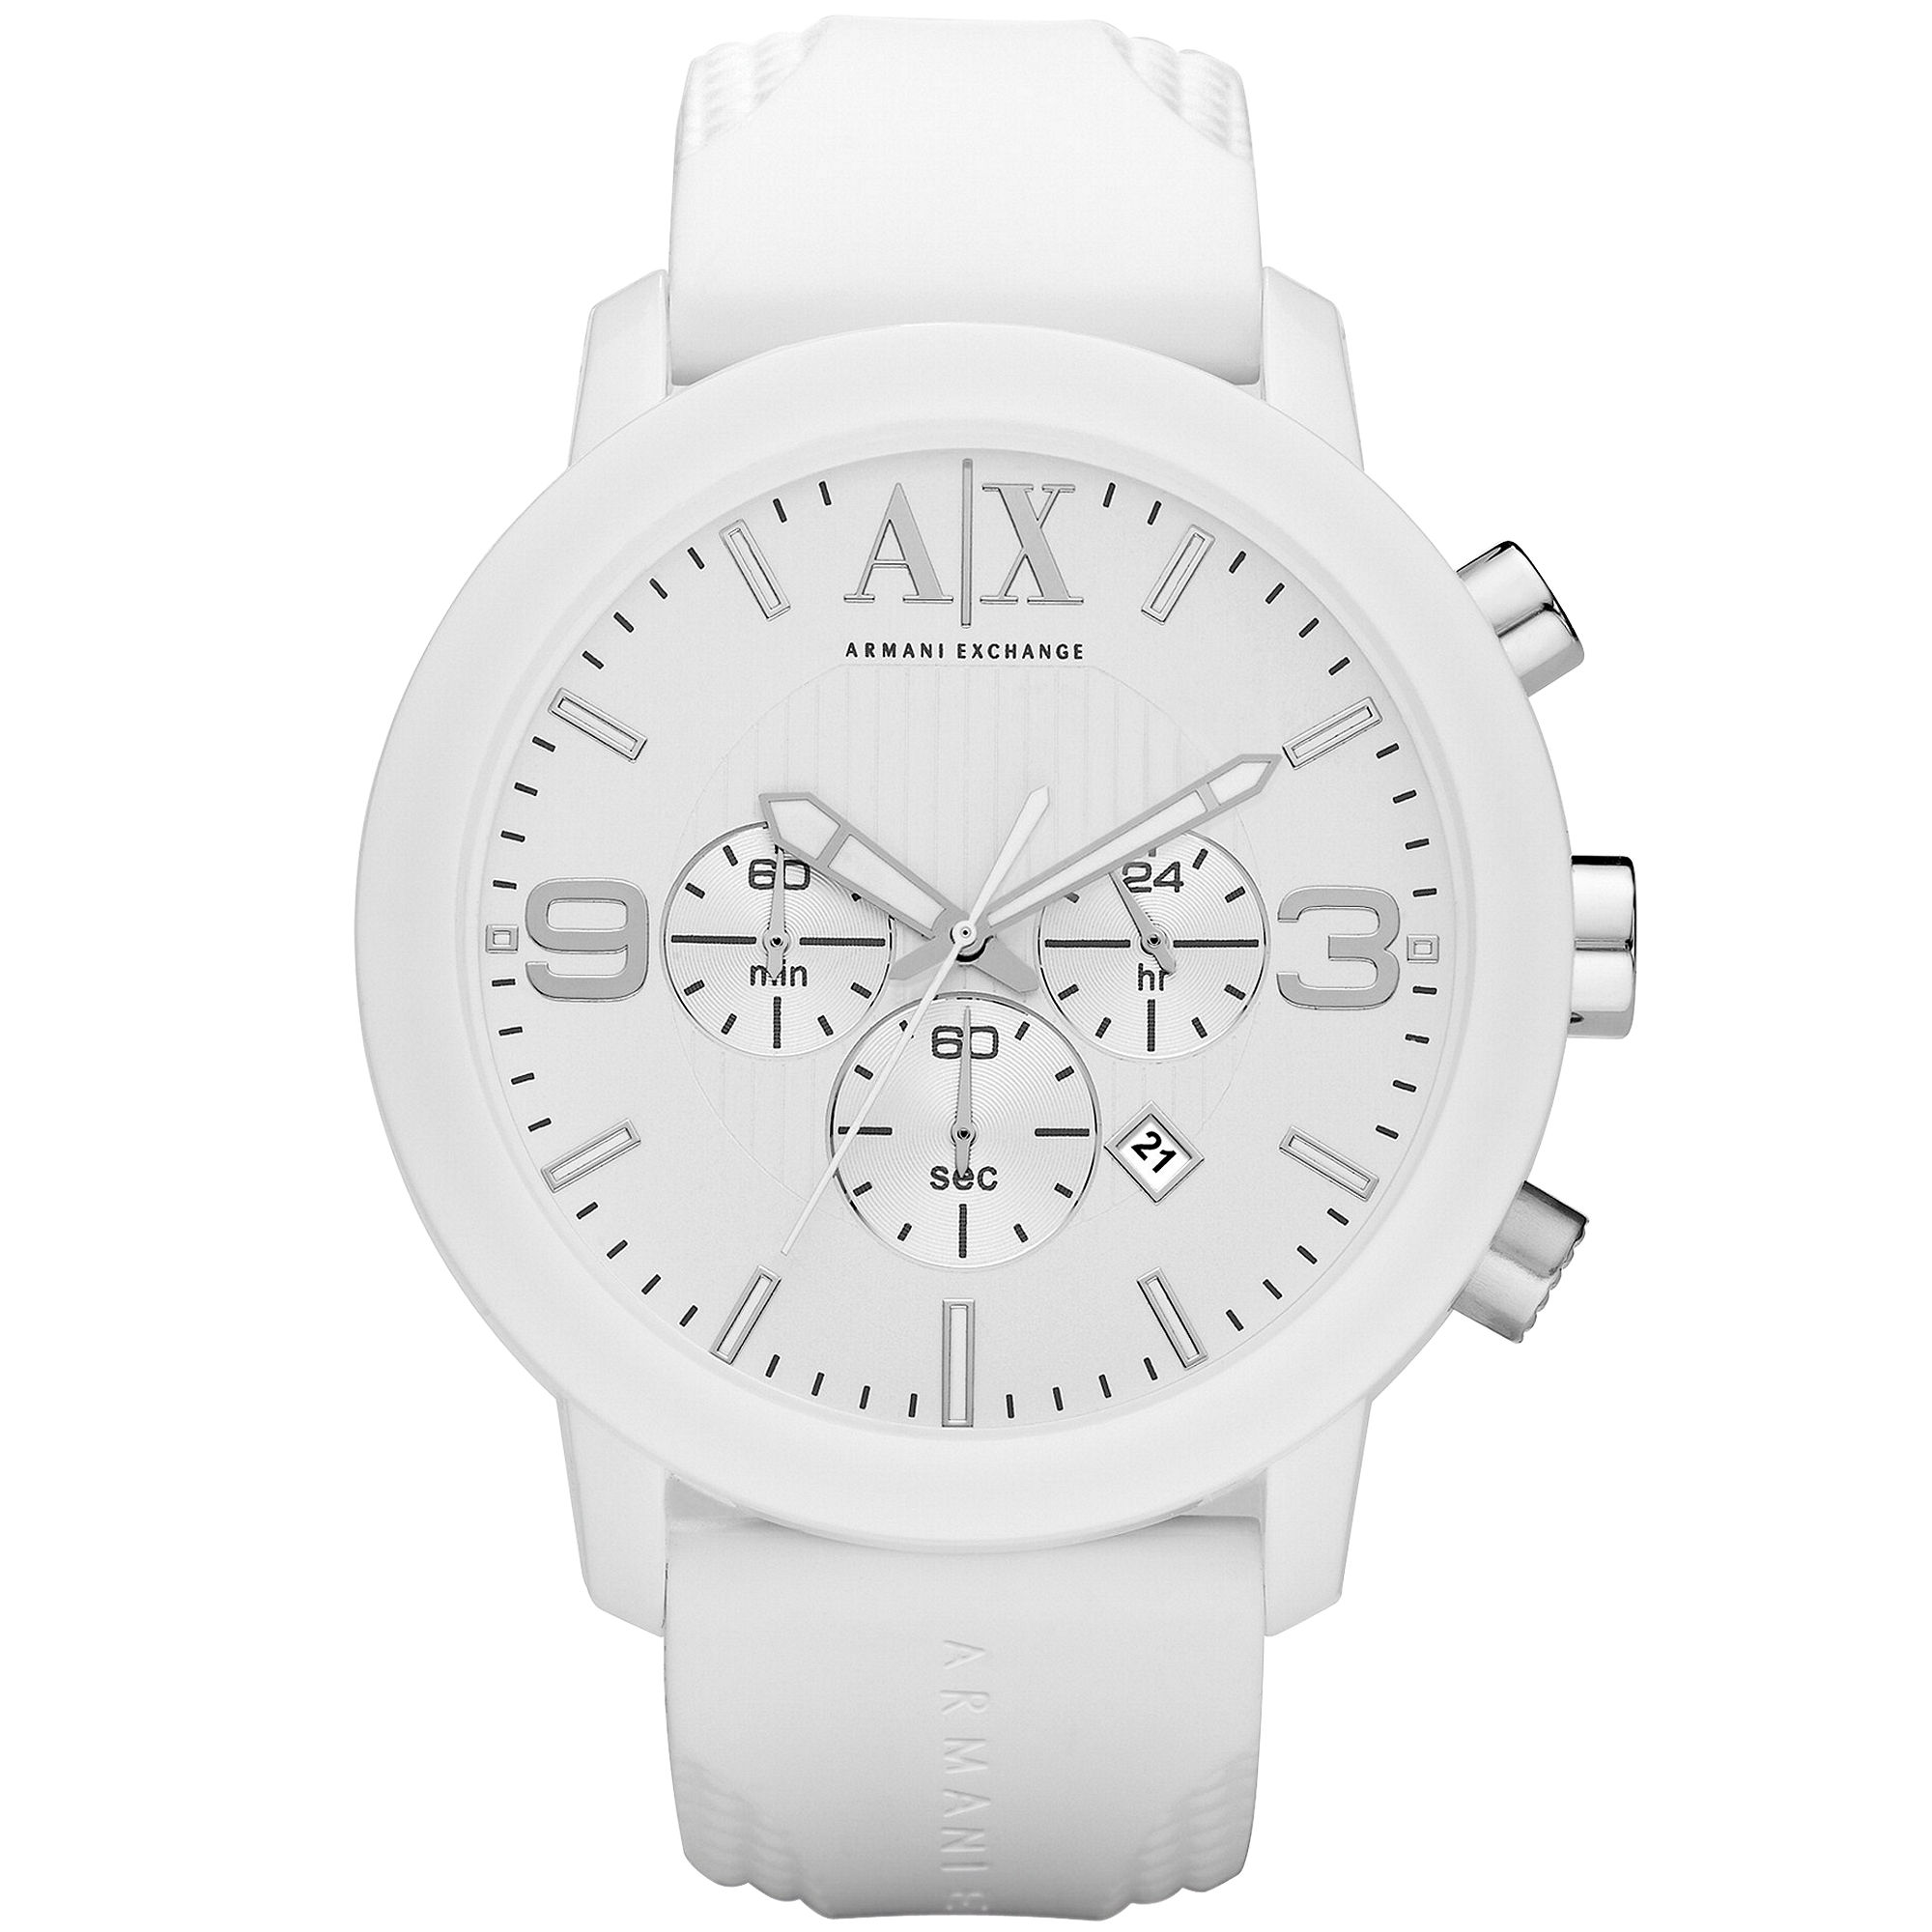 watches at mens zso ac white free men zappos shipped clhxauibdsabauicaweiga